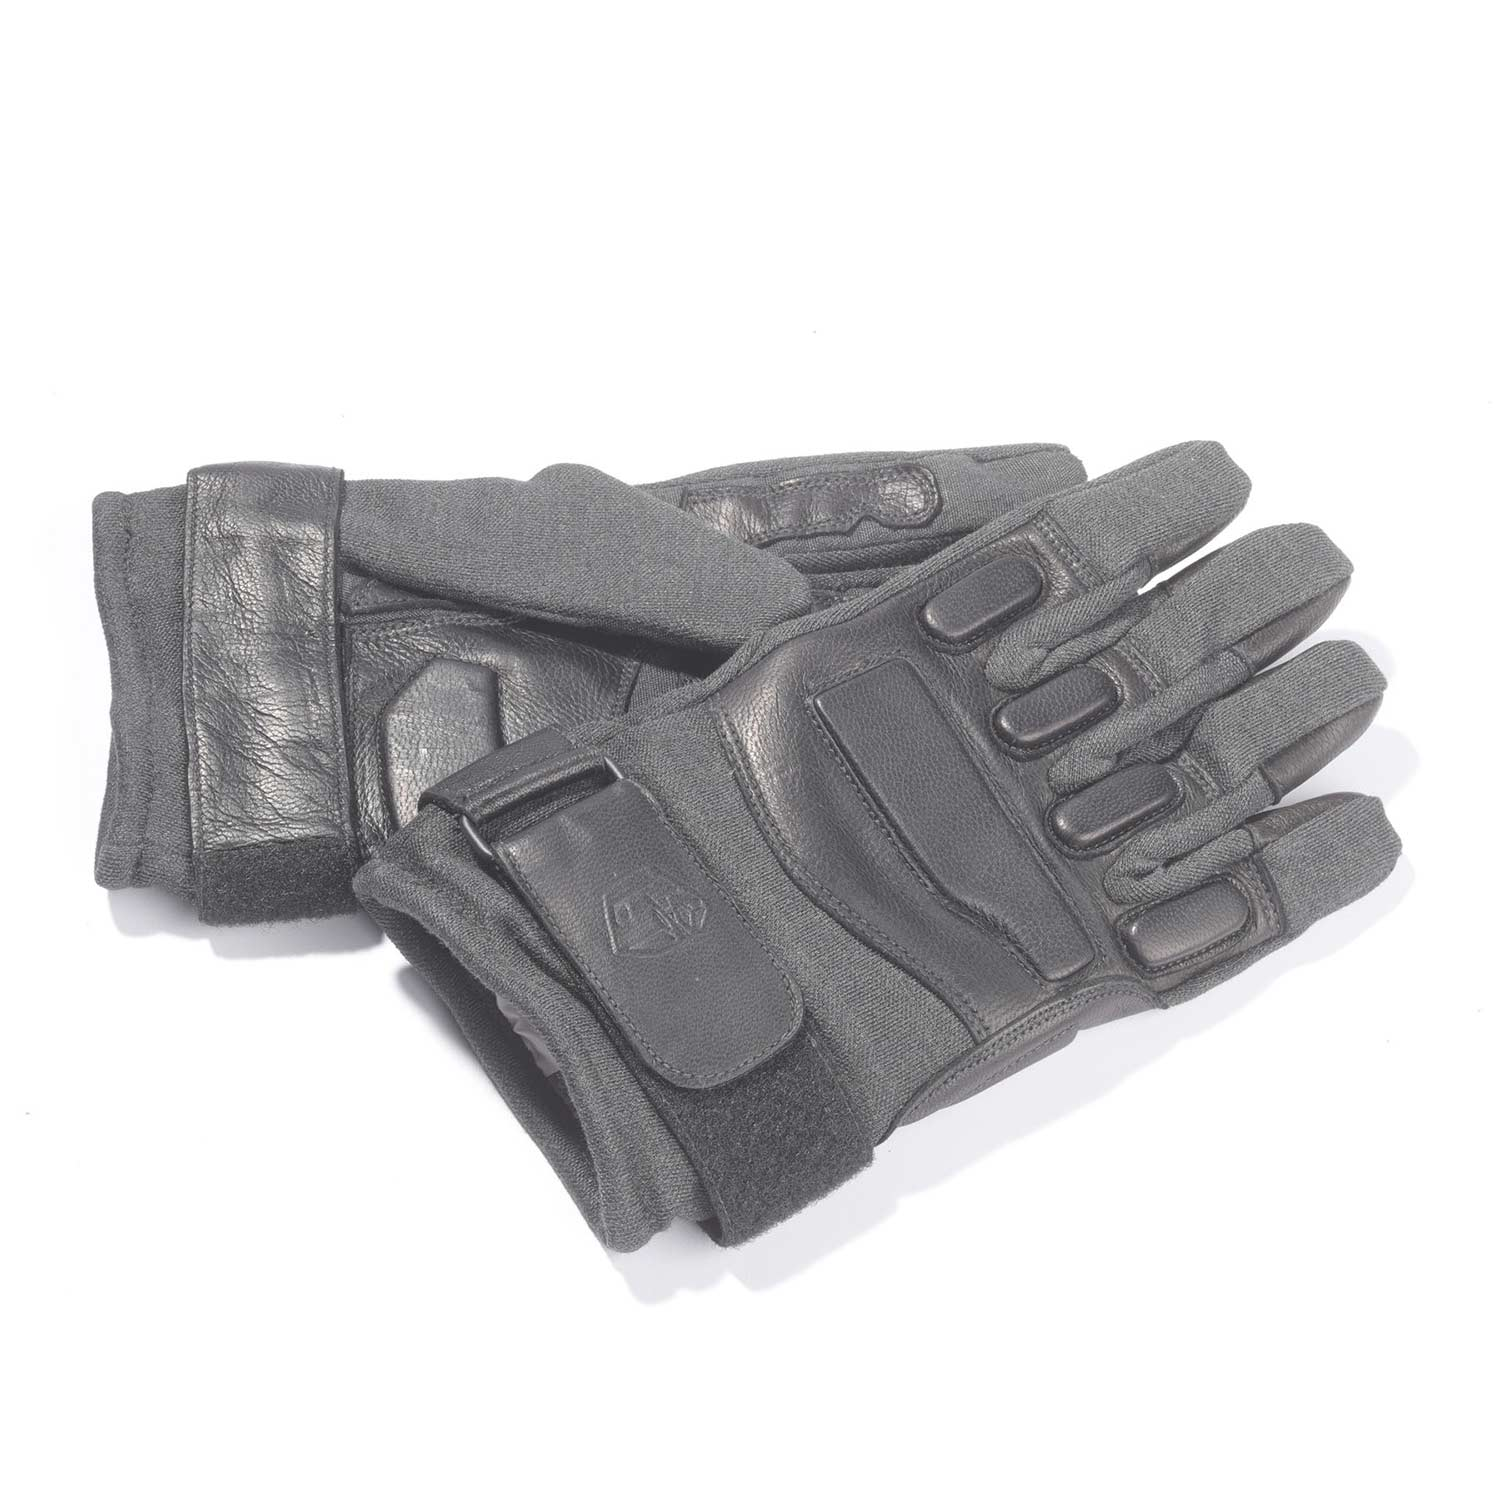 G Squared Thorshield Tactical Duty Gloves